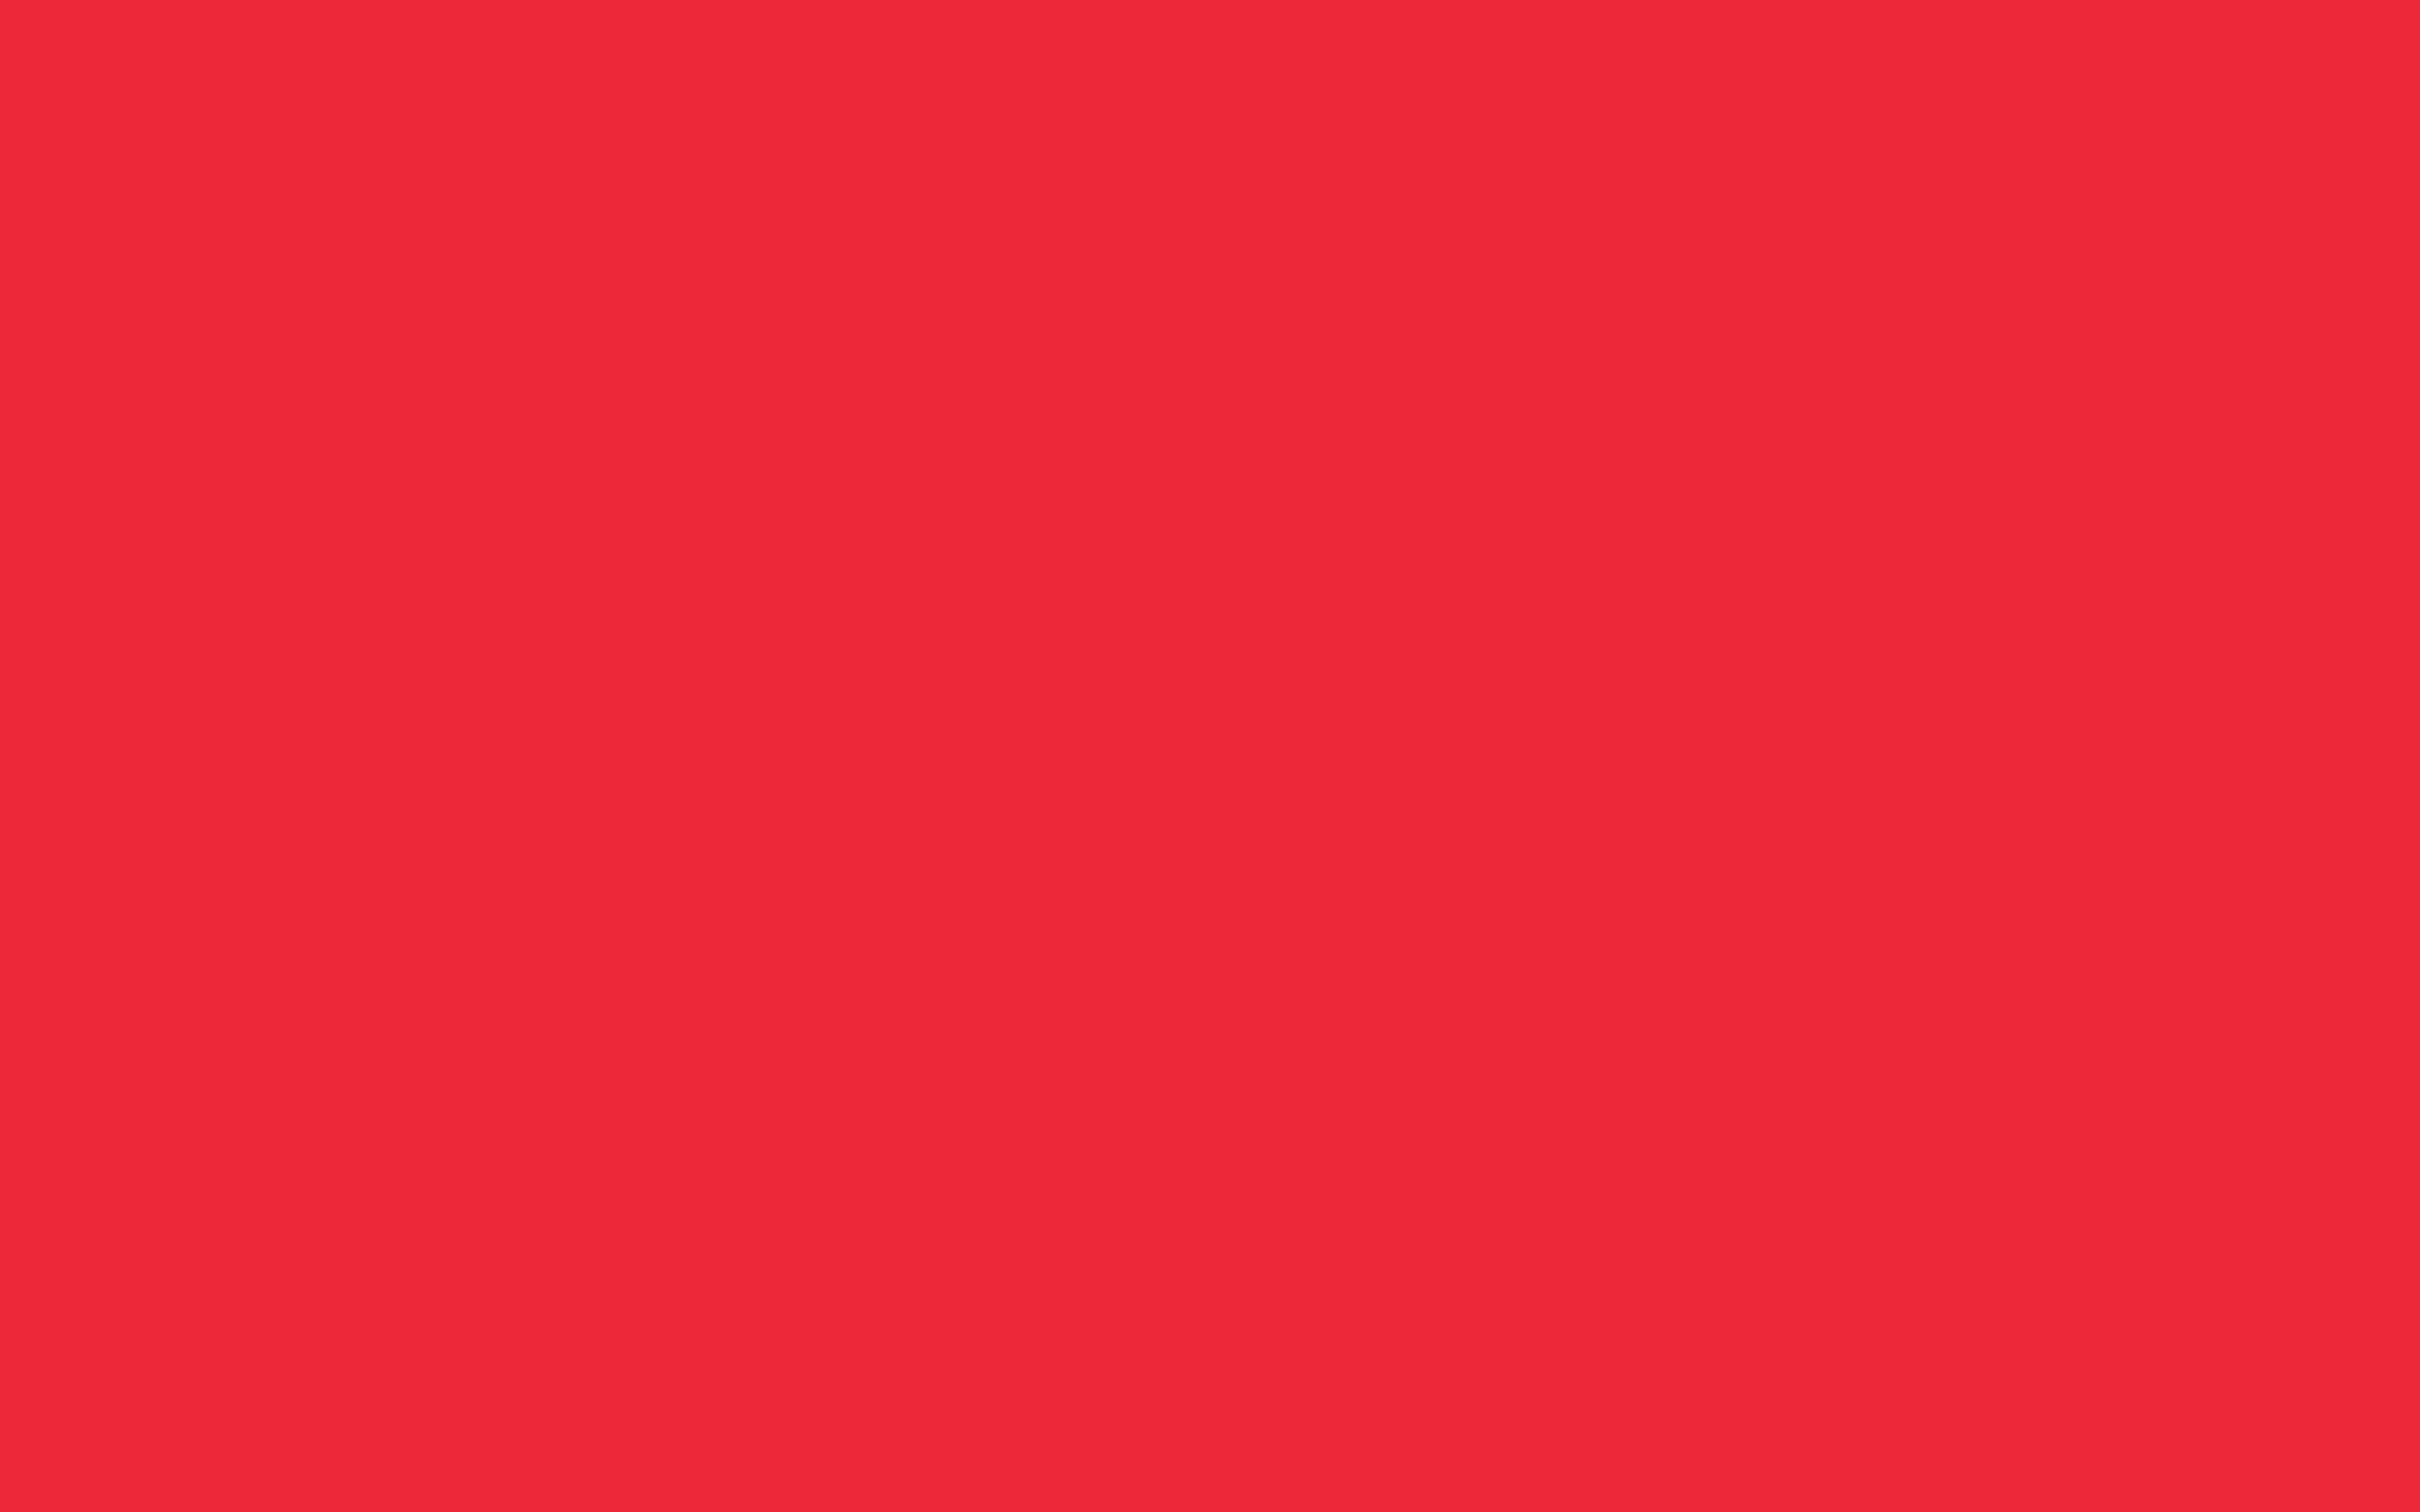 2880x1800 imperial red solid color background